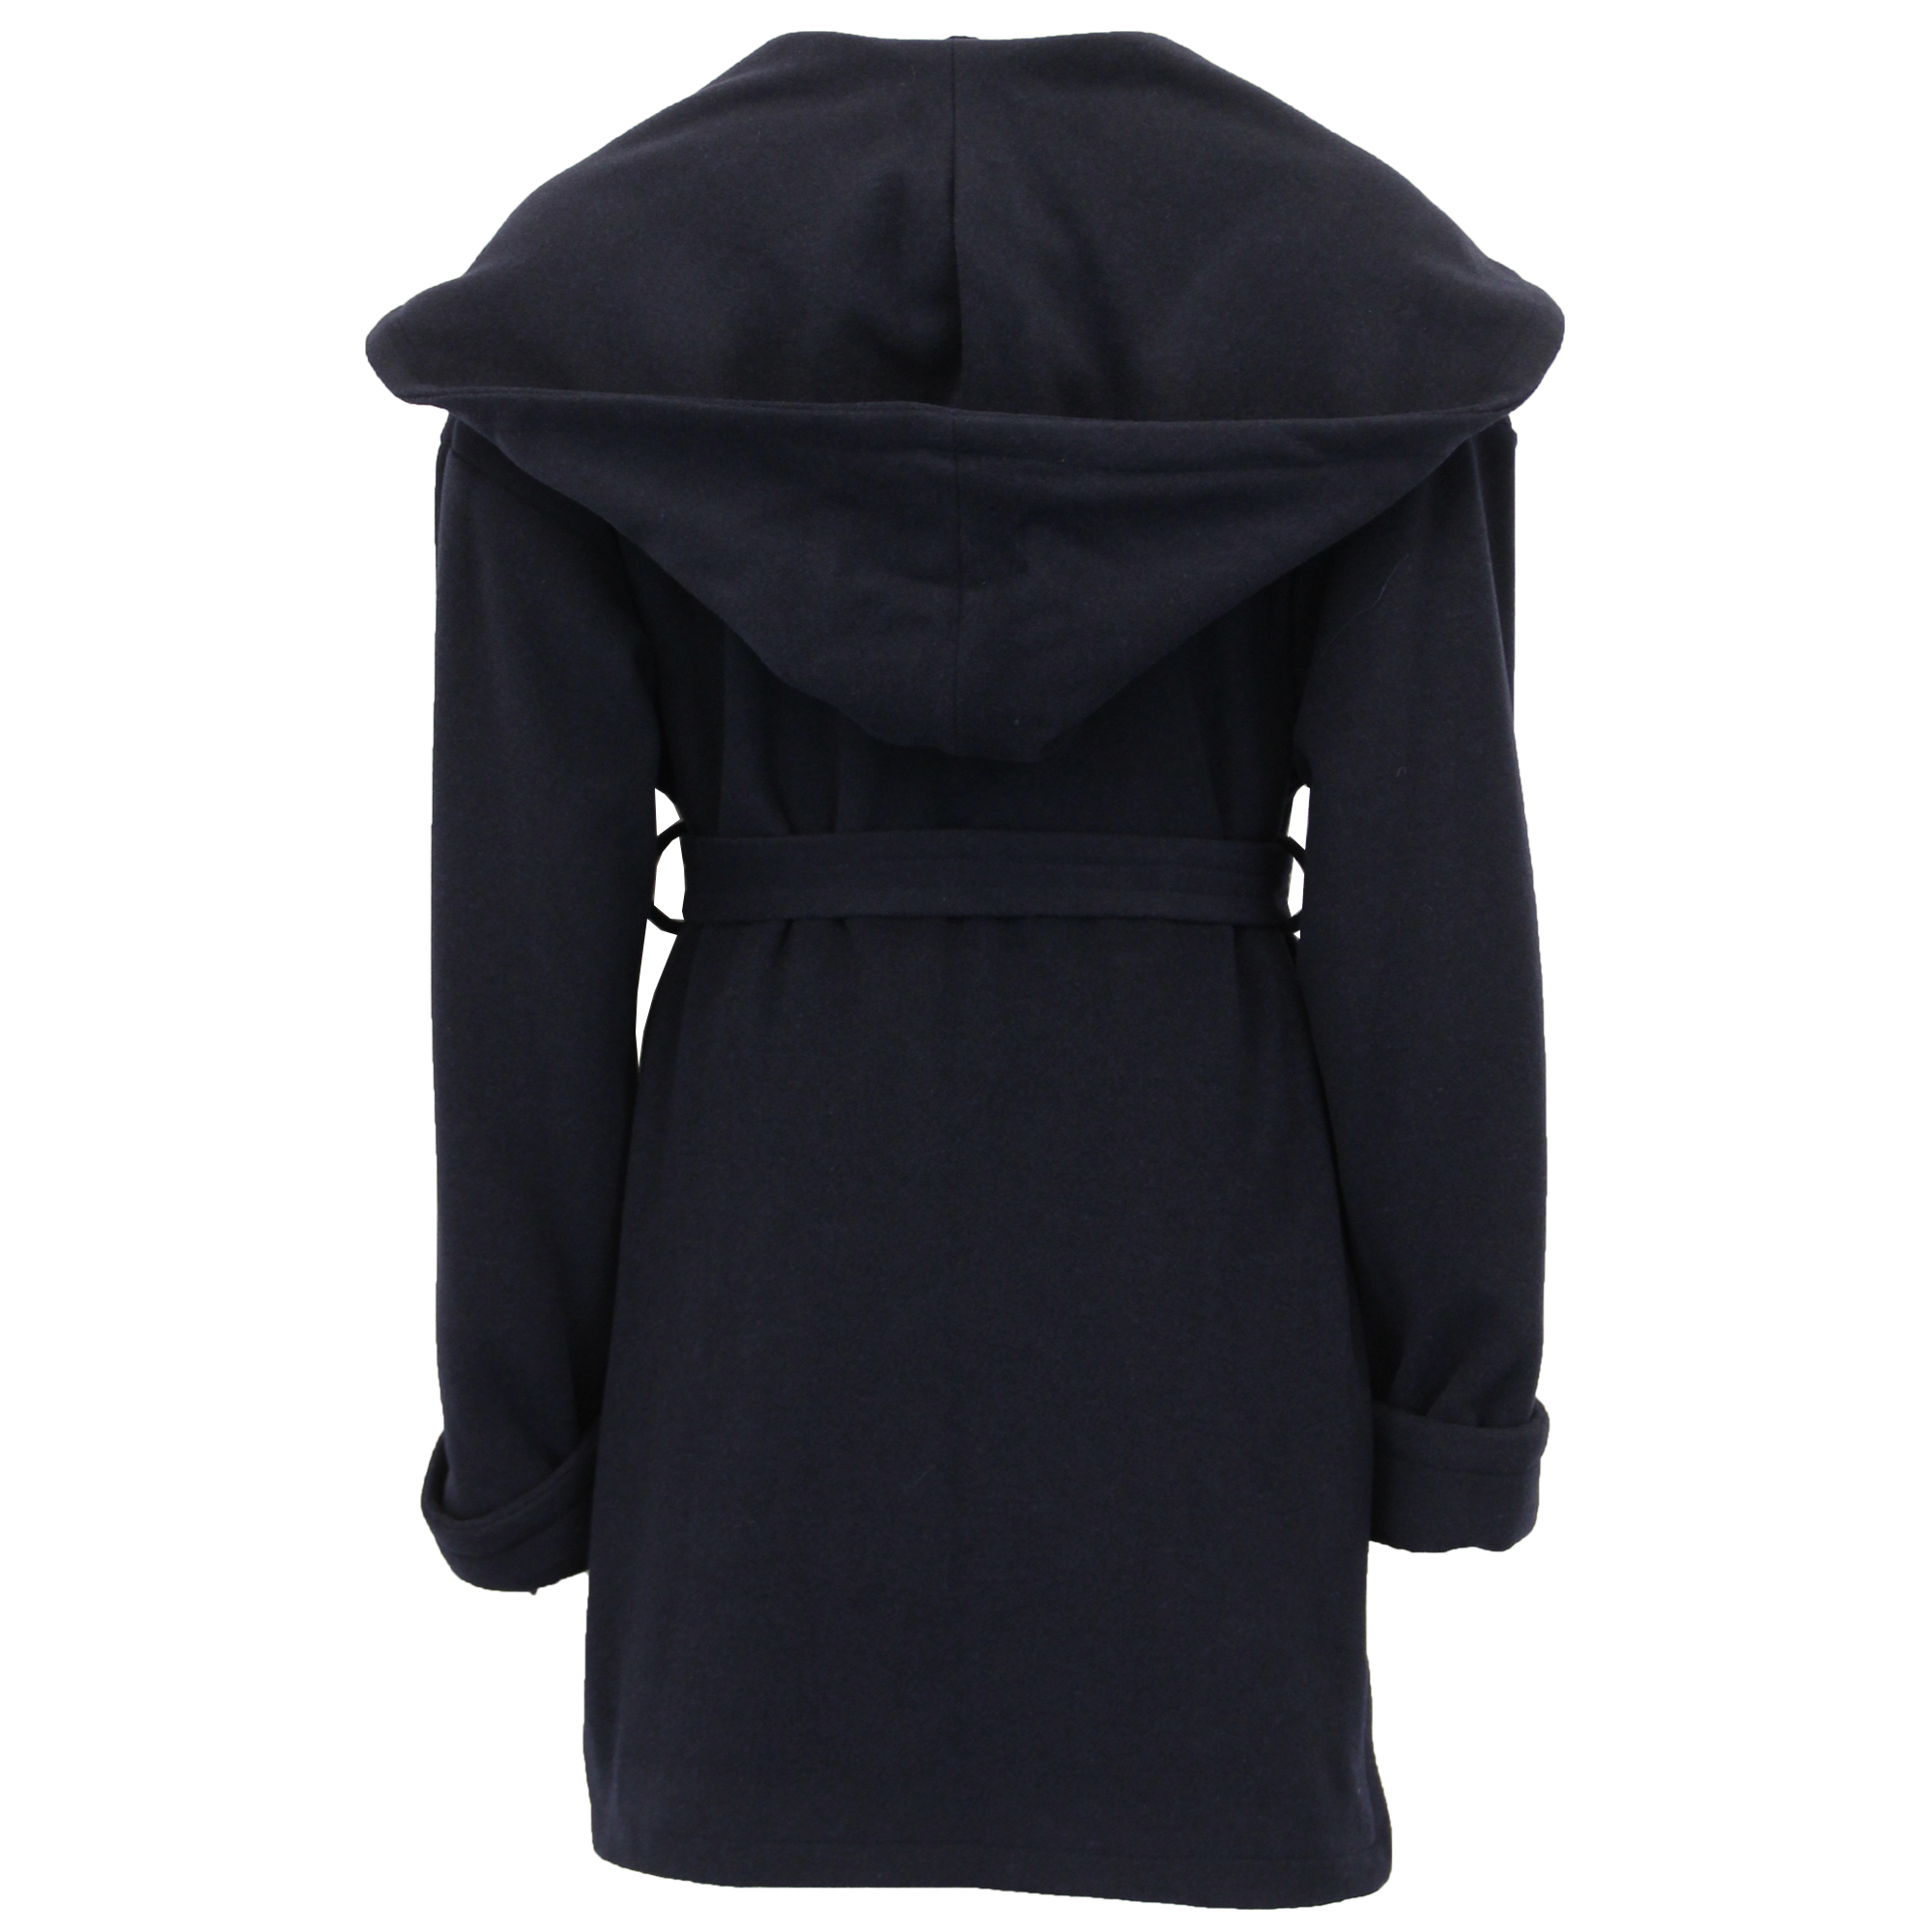 Ladies Hooded Wool Cashmere Coat Womens Belted Jacket Fashion Warm Casual Winter